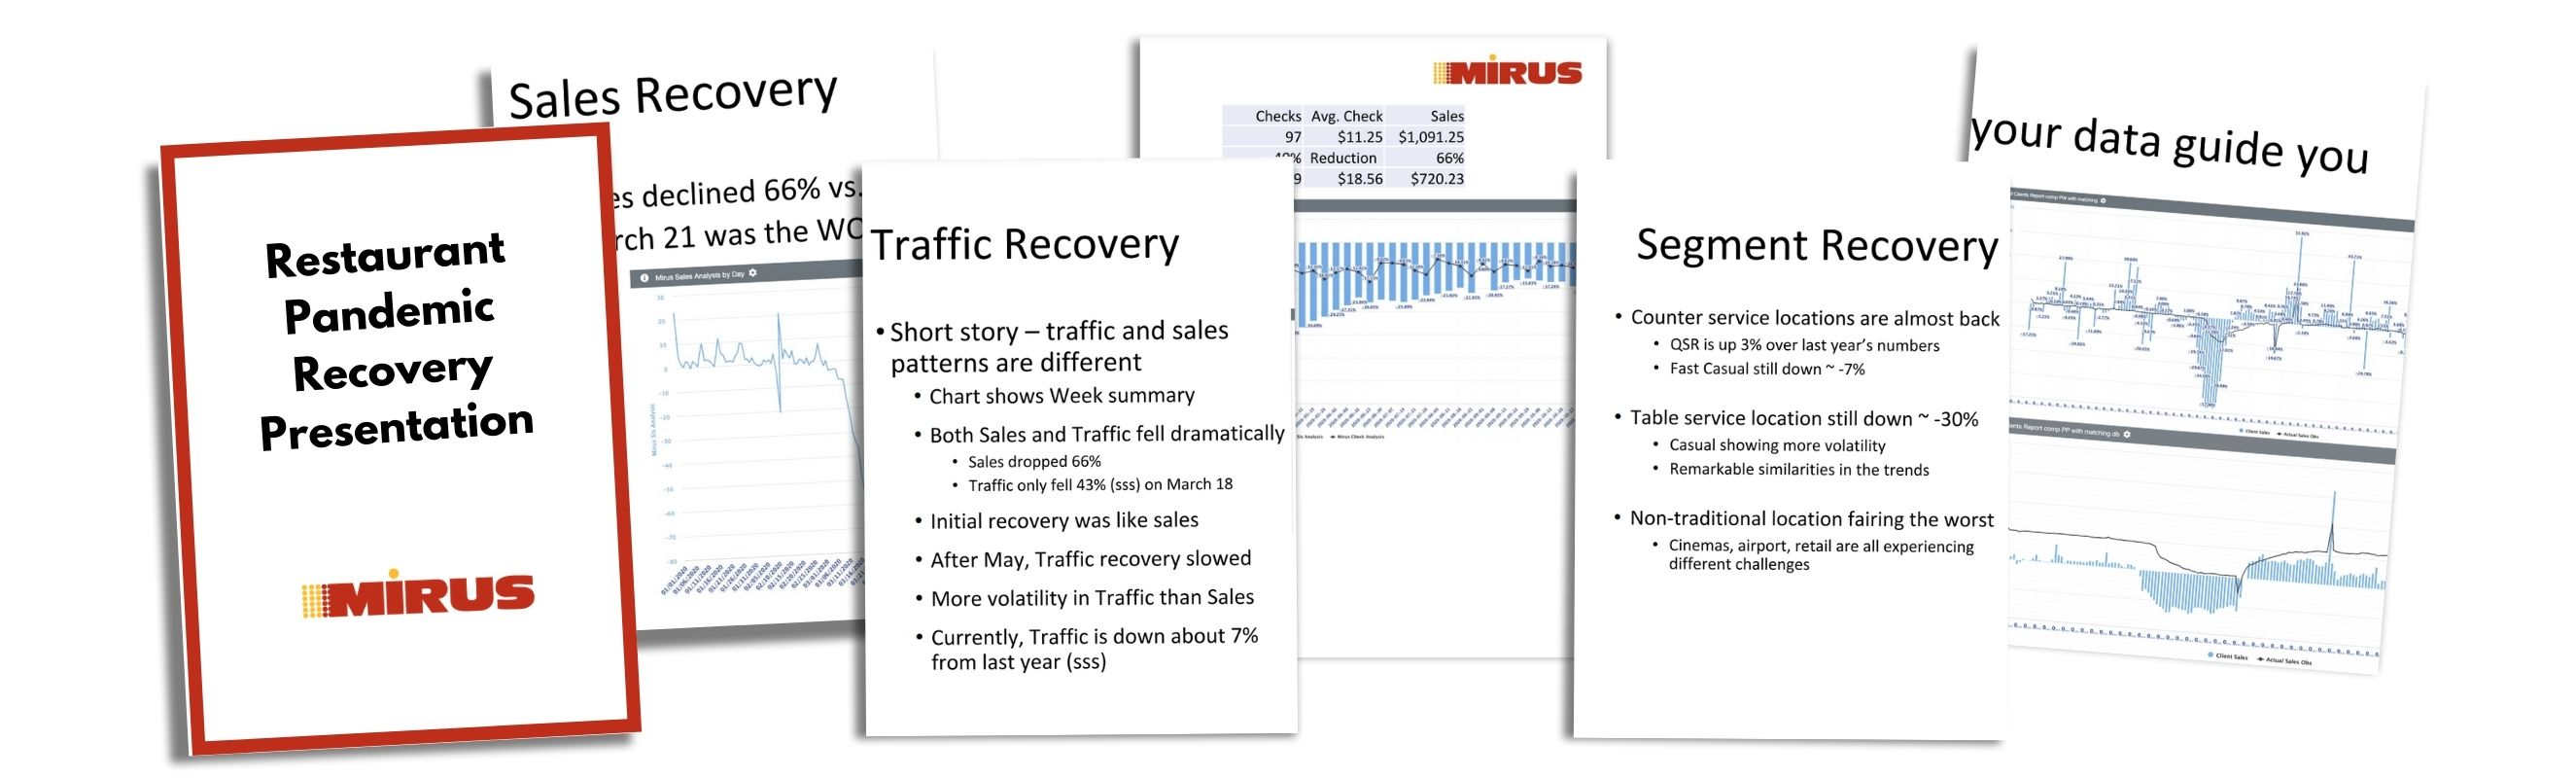 Restaurant Pandemic Recovery Presentation by Mirus